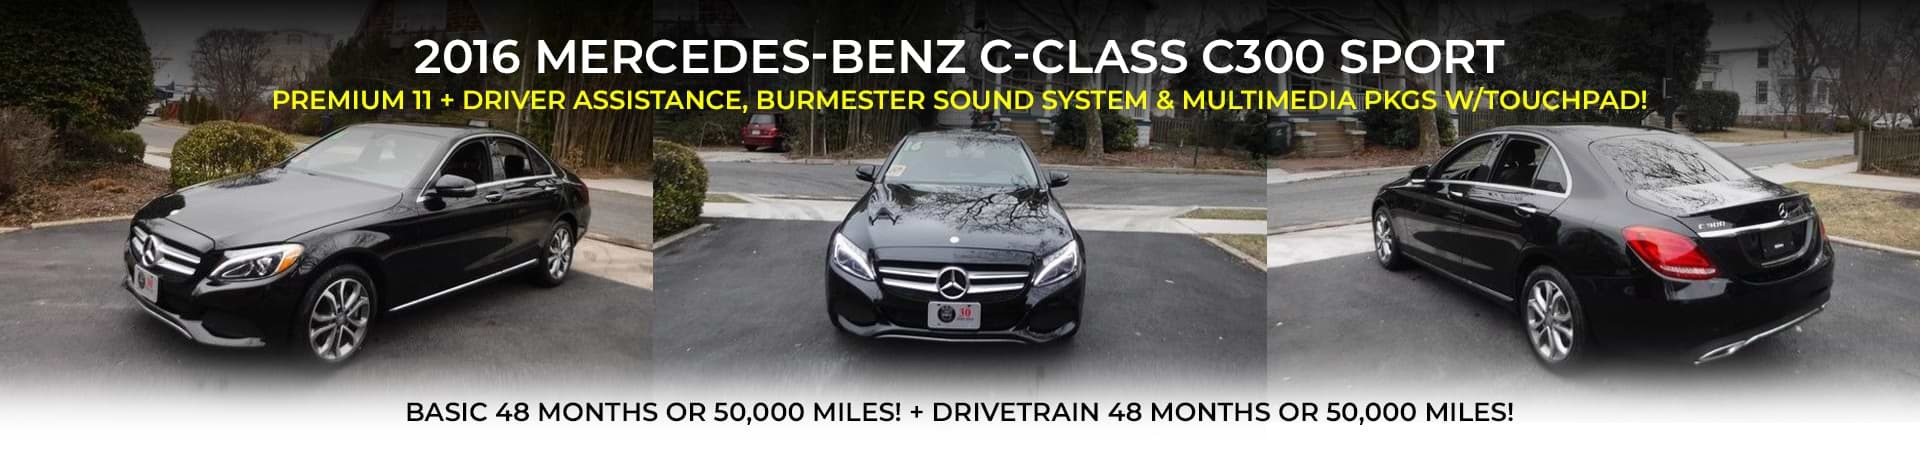 2016 Mercedes-Benz C-Class C300 Sport at WBM of Arlington